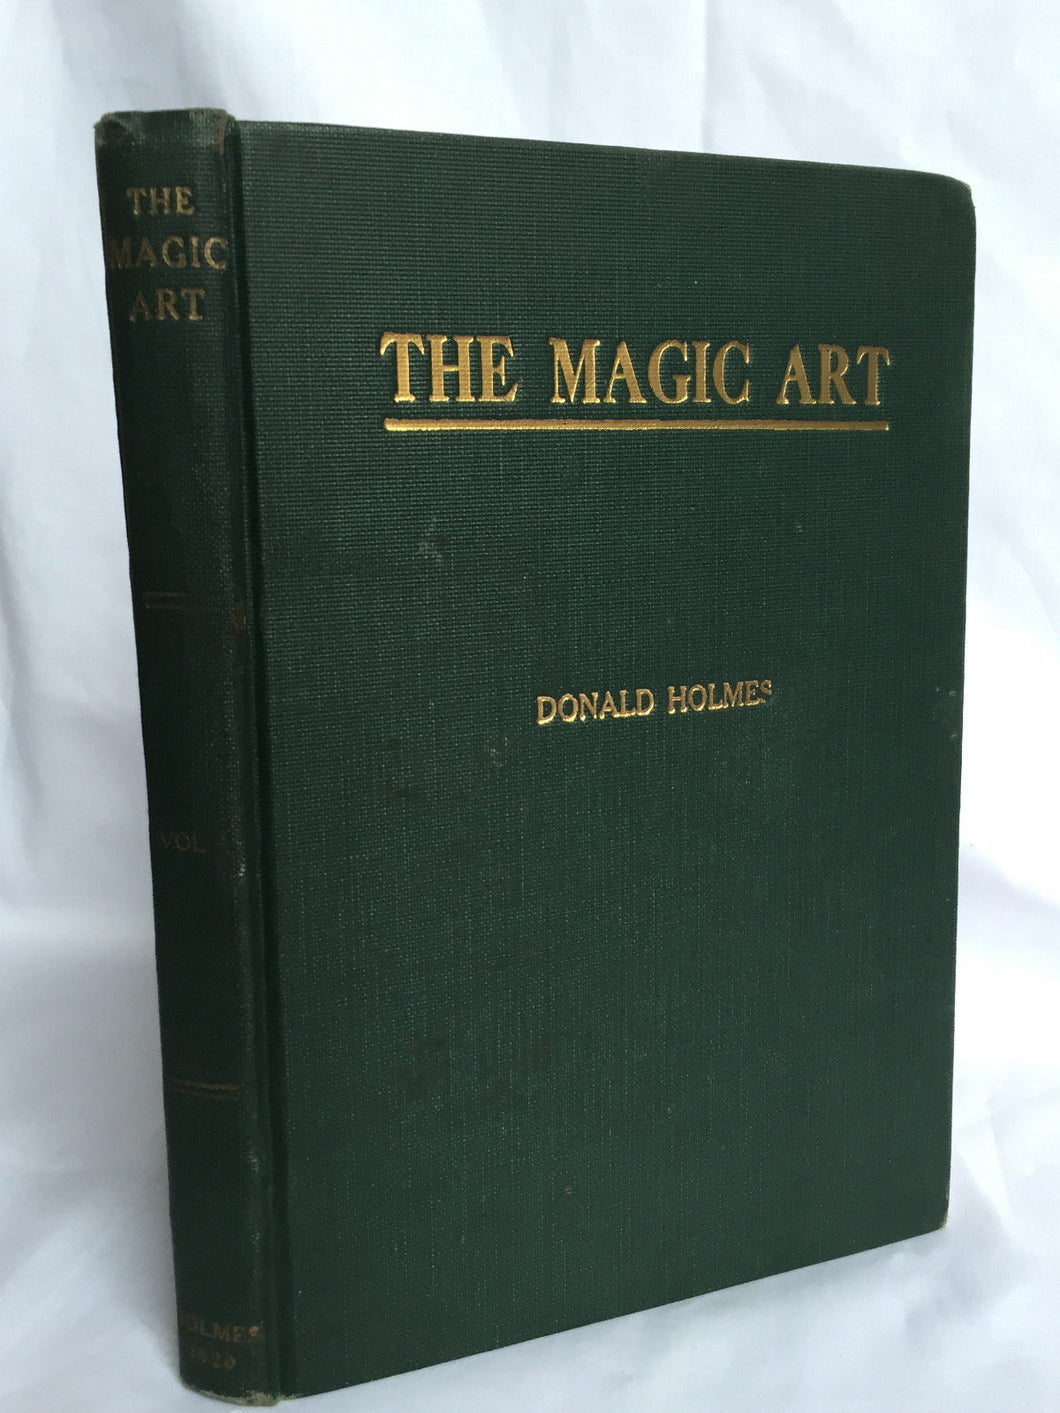 THE MAGIC ART by Donald Holmes, 1st / 1st, 1920 Magic Tricks Stage, Illustrated